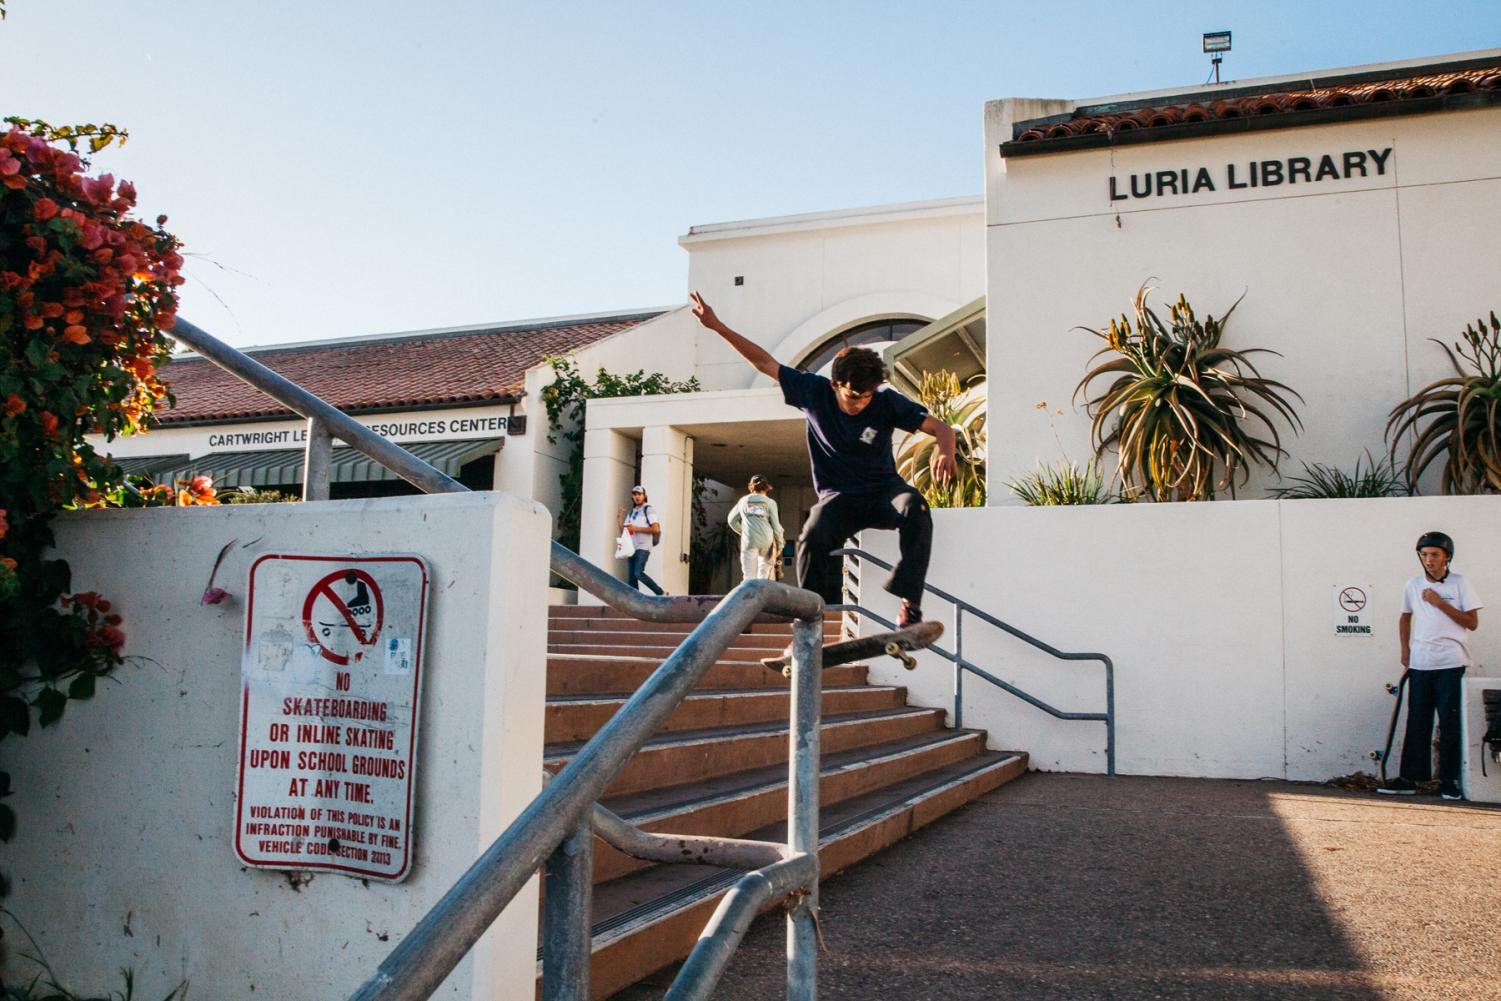 Emmett Wallop ollies a five stair on Tuesday, Nov. 19 outside the Luria Libary. Campus security arrived shortly to remove wallop and friends from the premises.